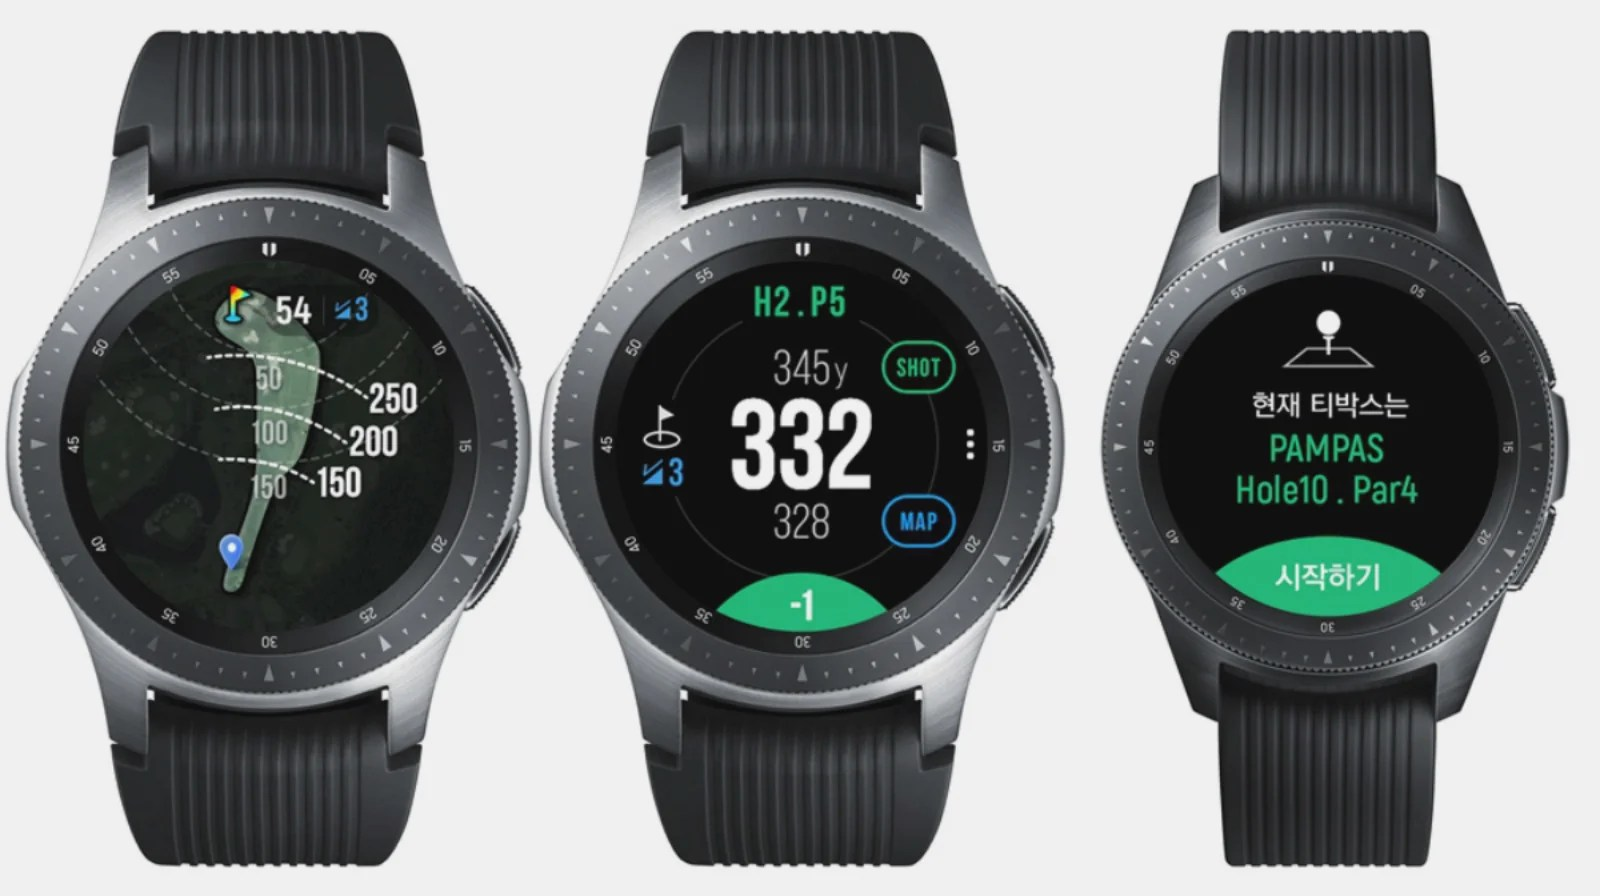 Esszimmer Rio Samsung Galaxy Watch Golf Edition Is Here But It S A Double Bogey